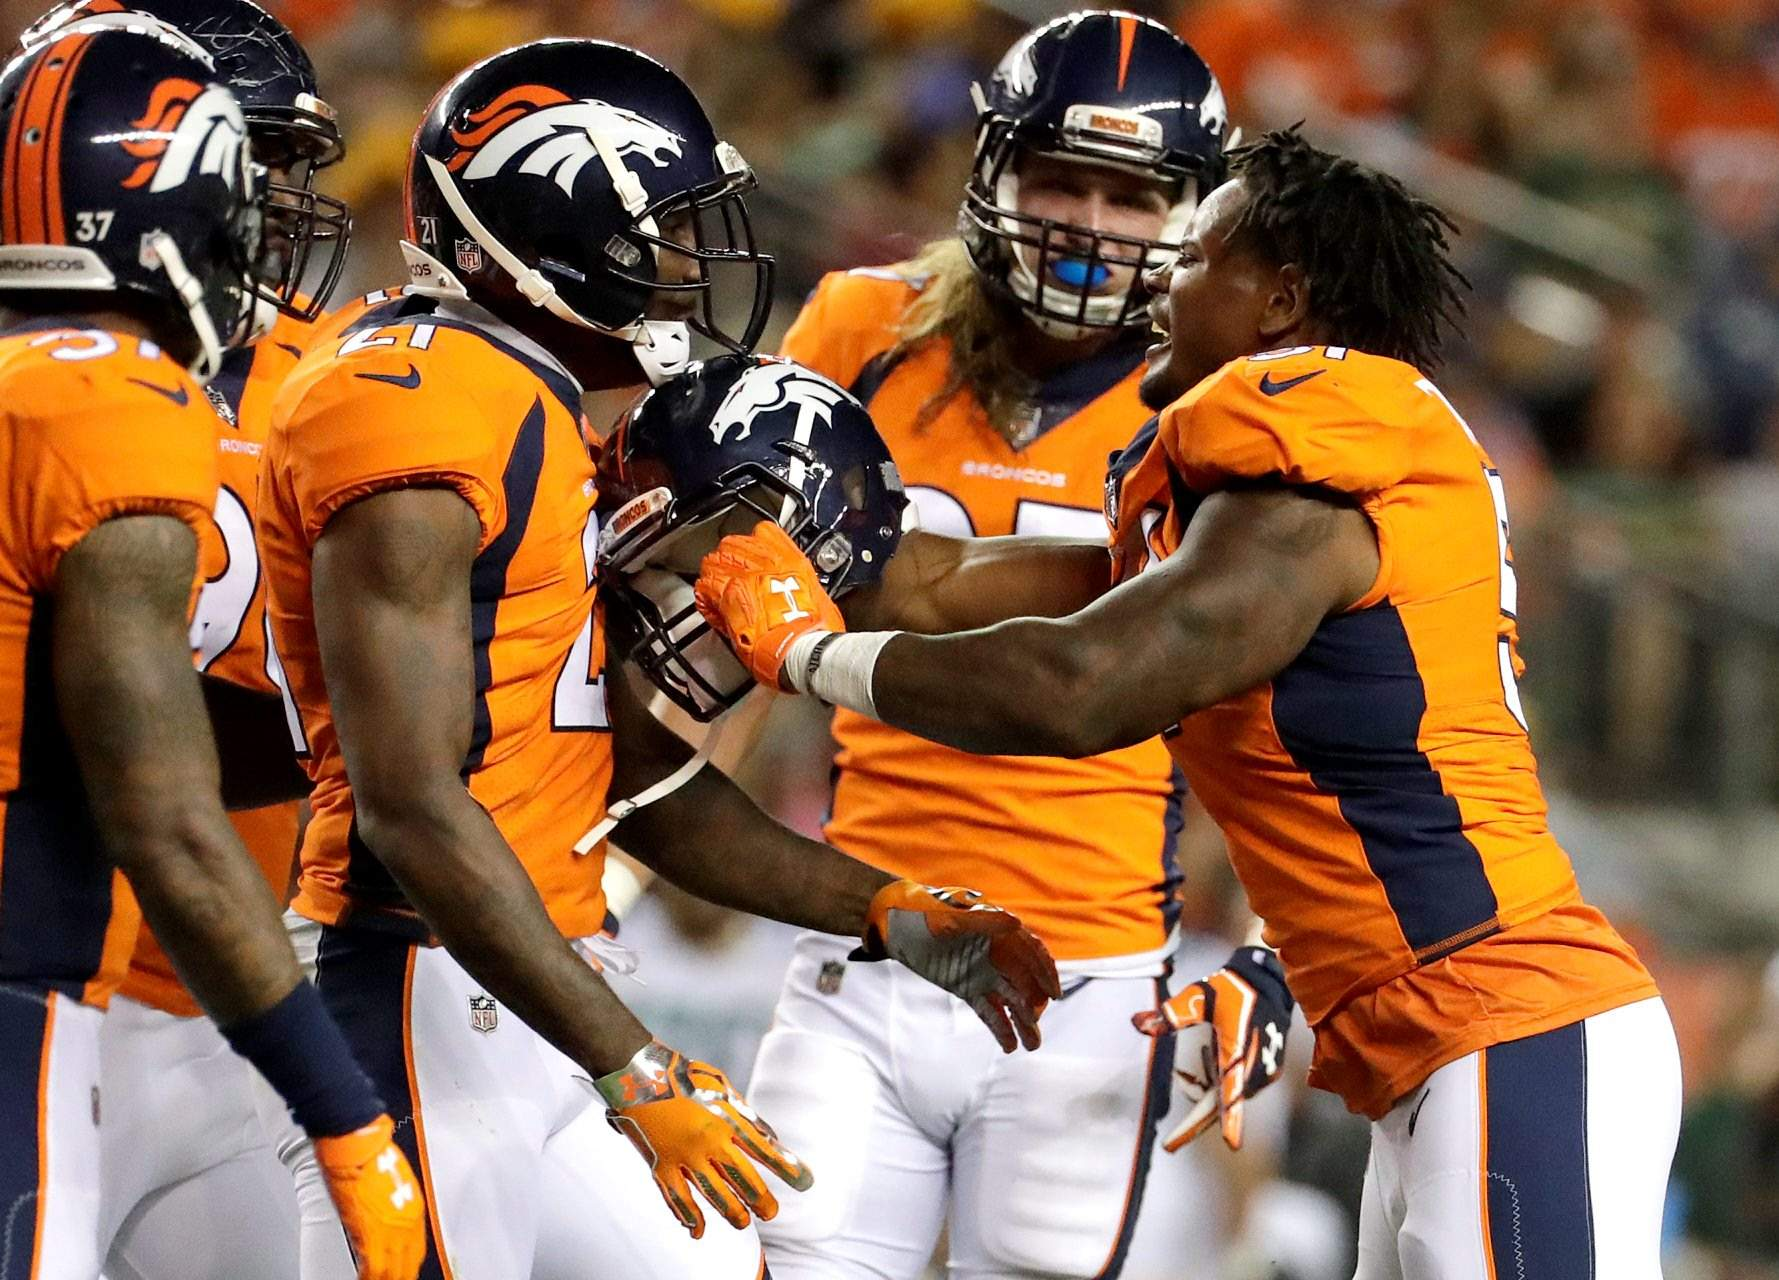 ecbc4a631a6 Jamaal Charles flashes skill in Broncos preseason win against Packers